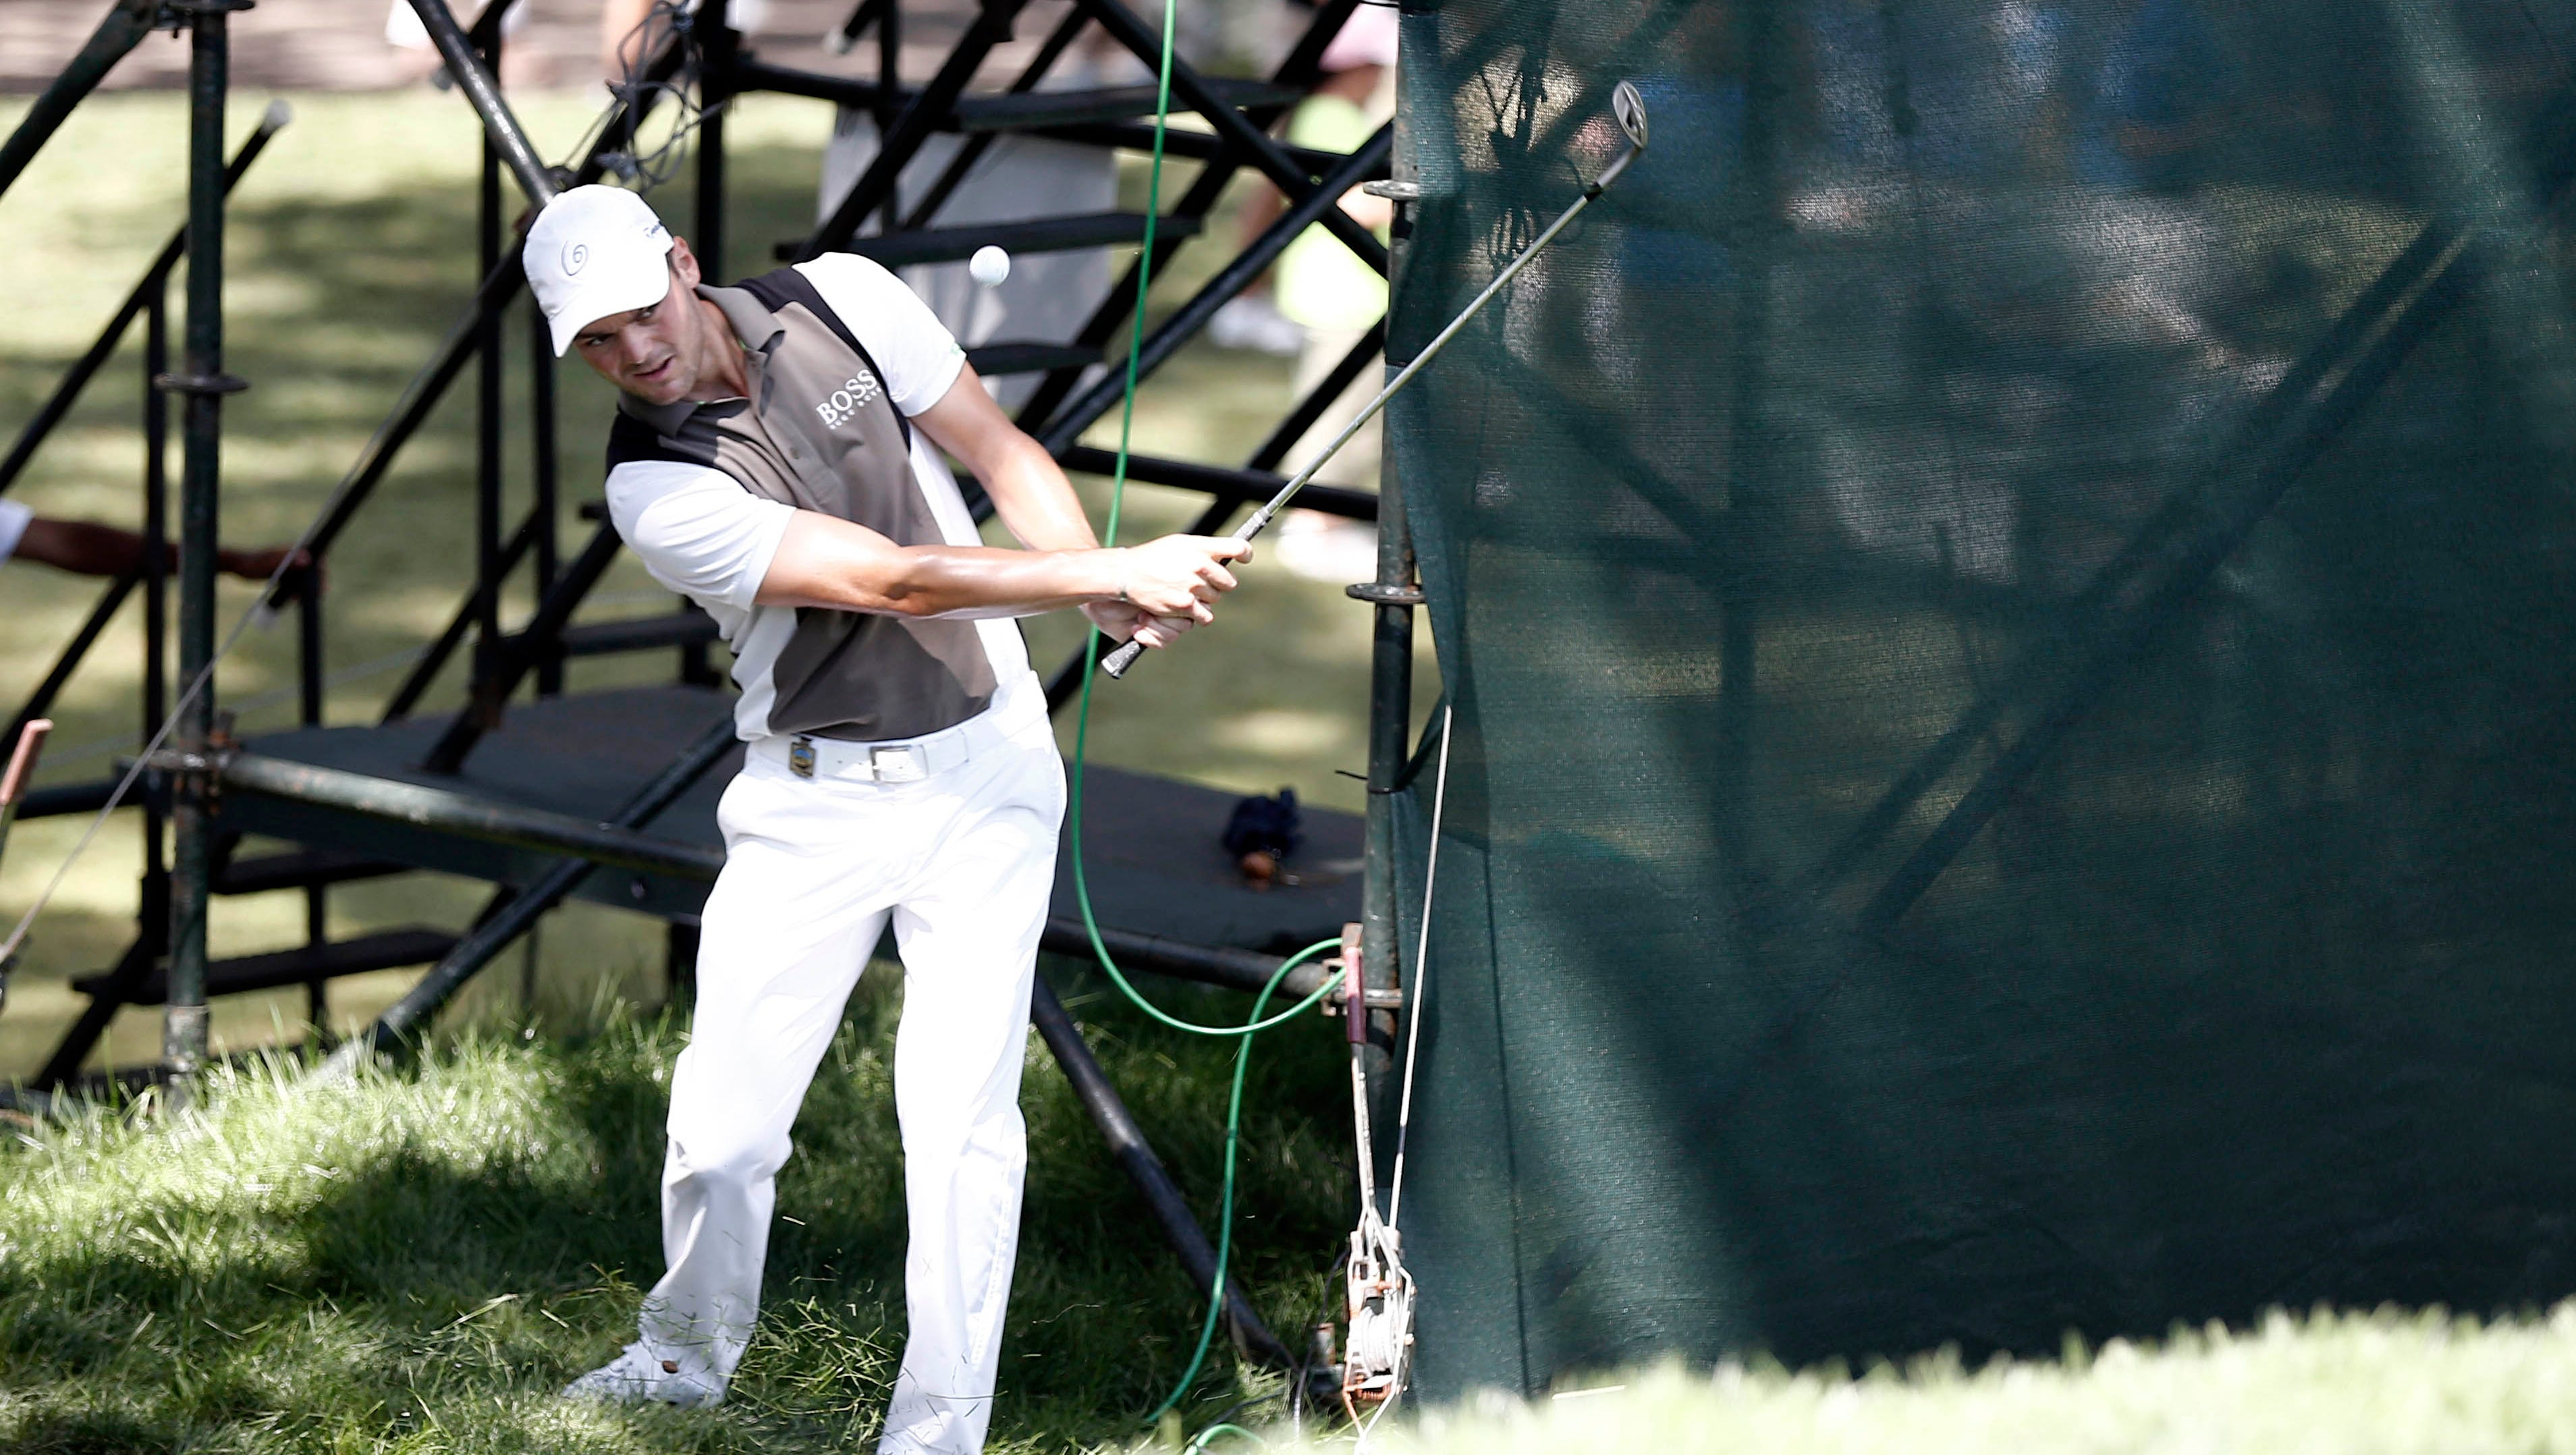 Martin Kaymer had some trouble at No. 3, chipping up to the green next to a TV tower.